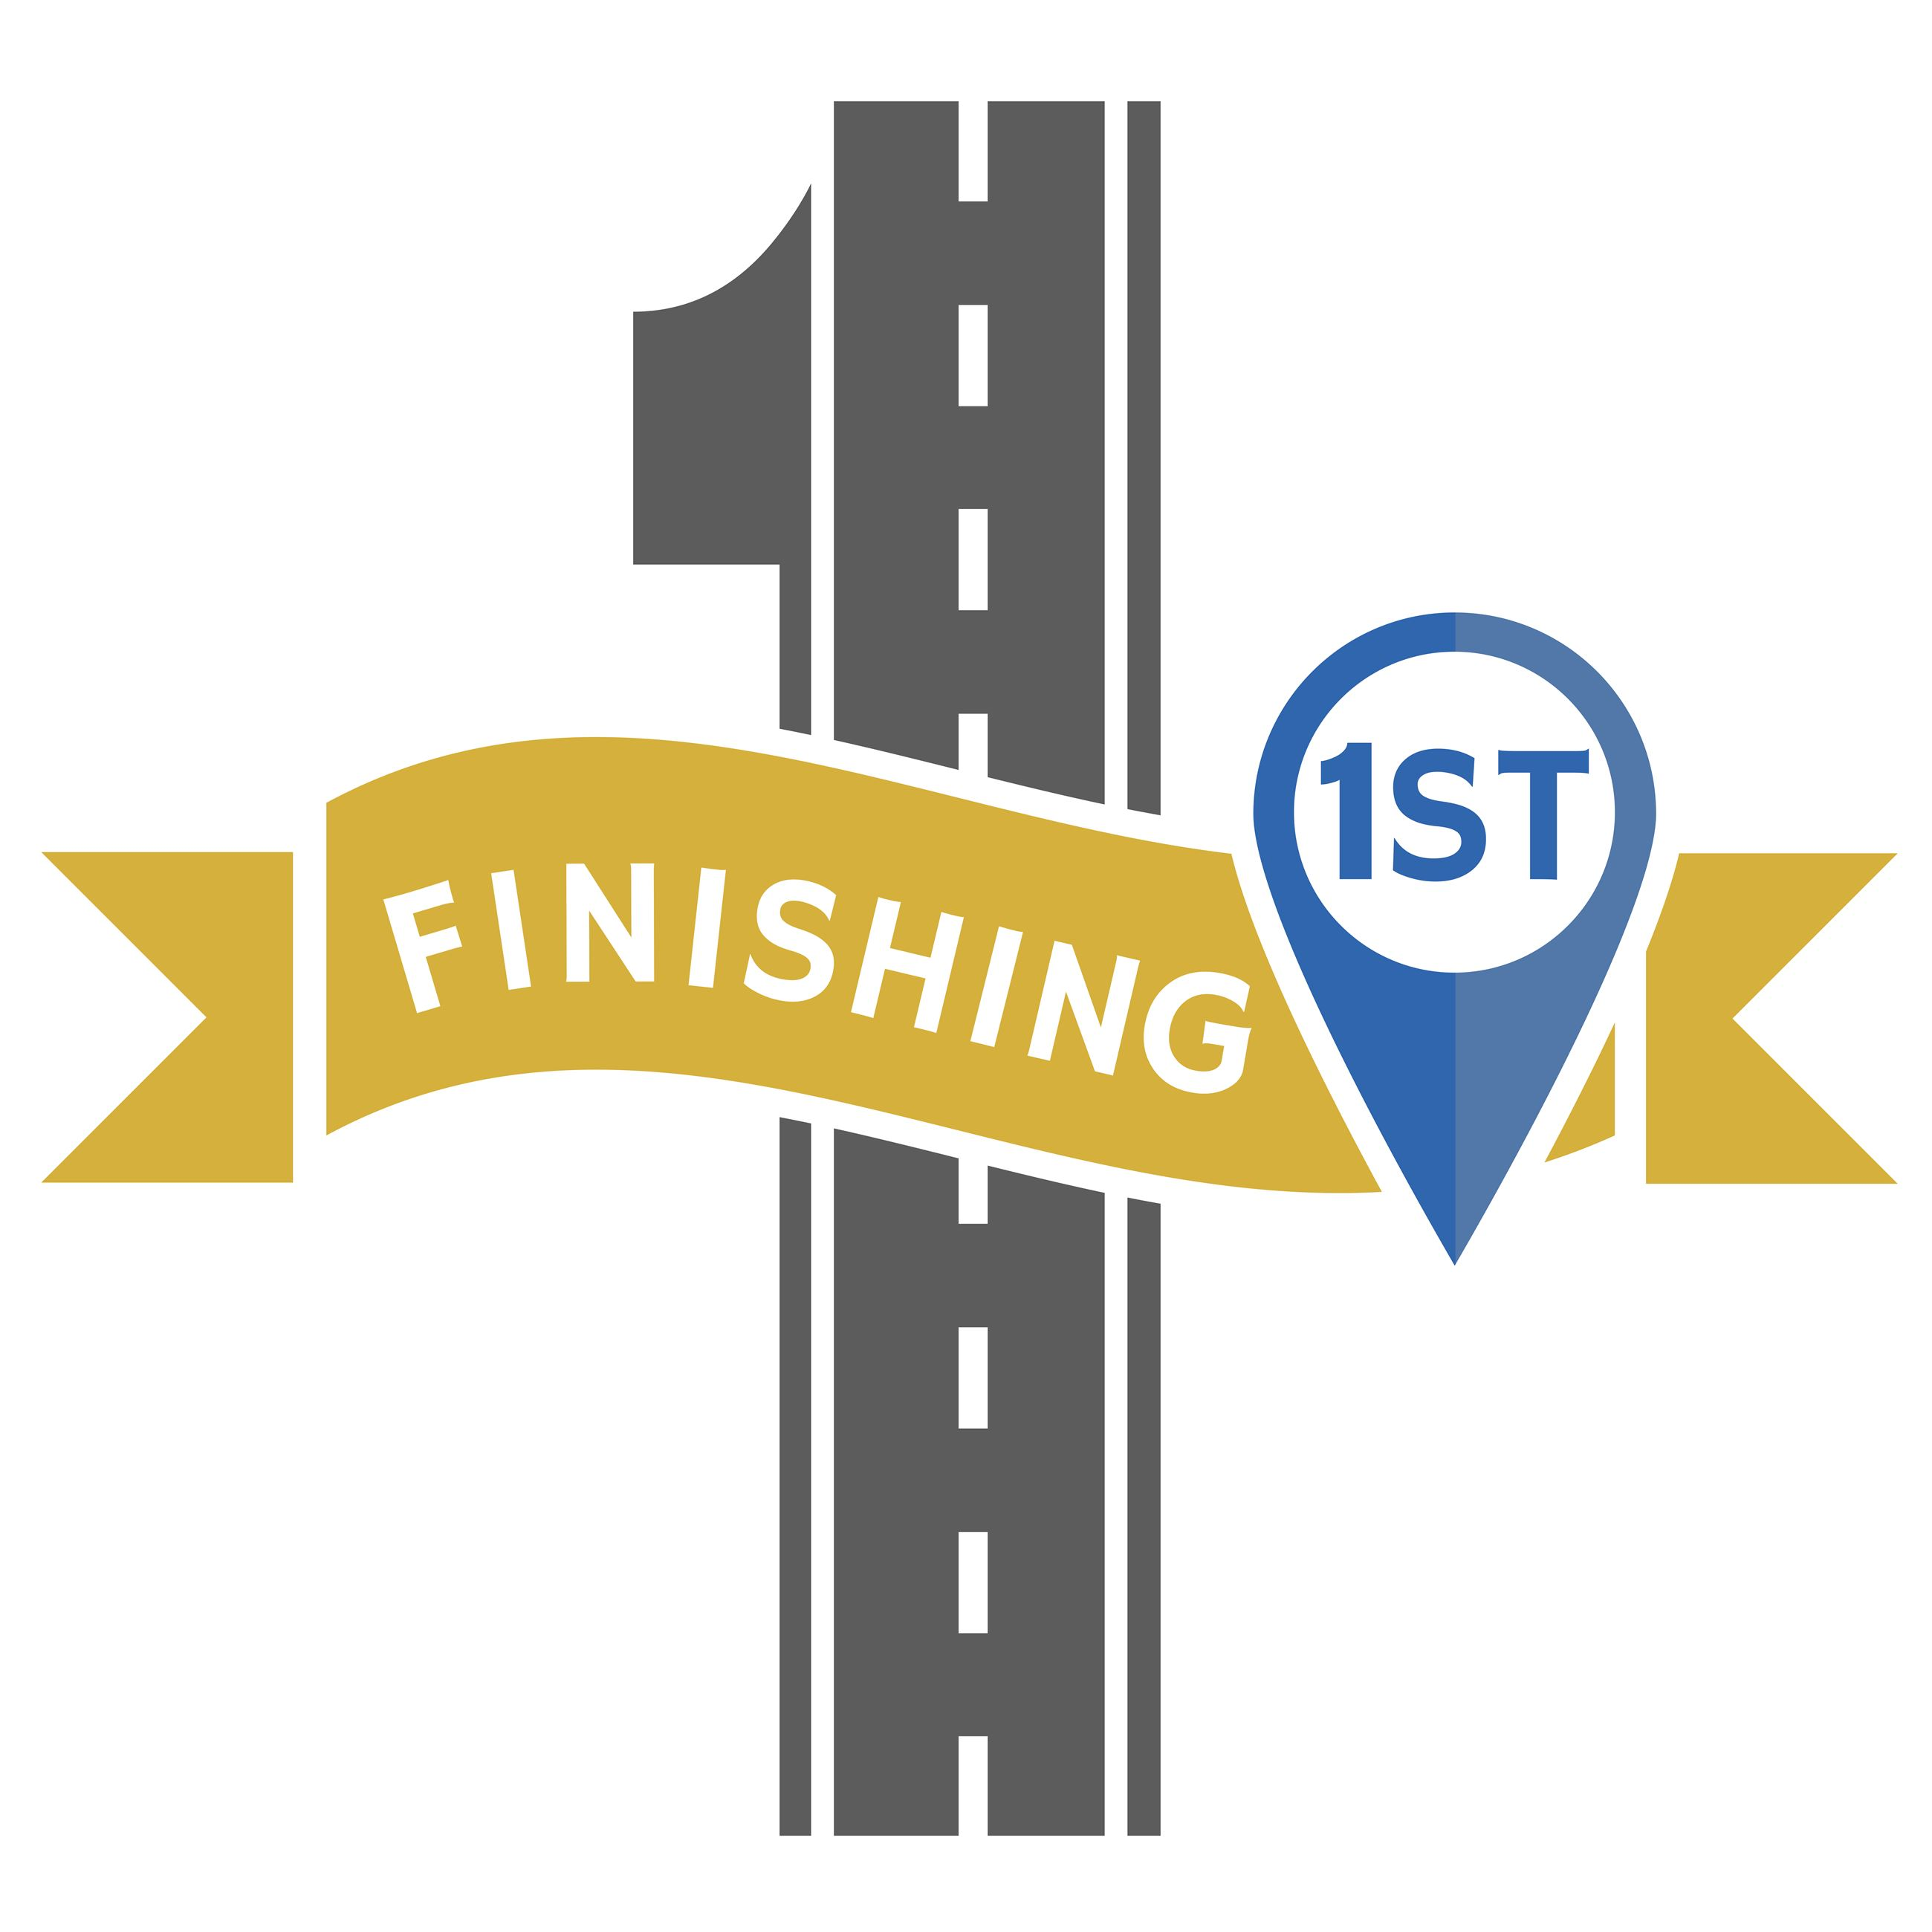 Finishing 1st logo